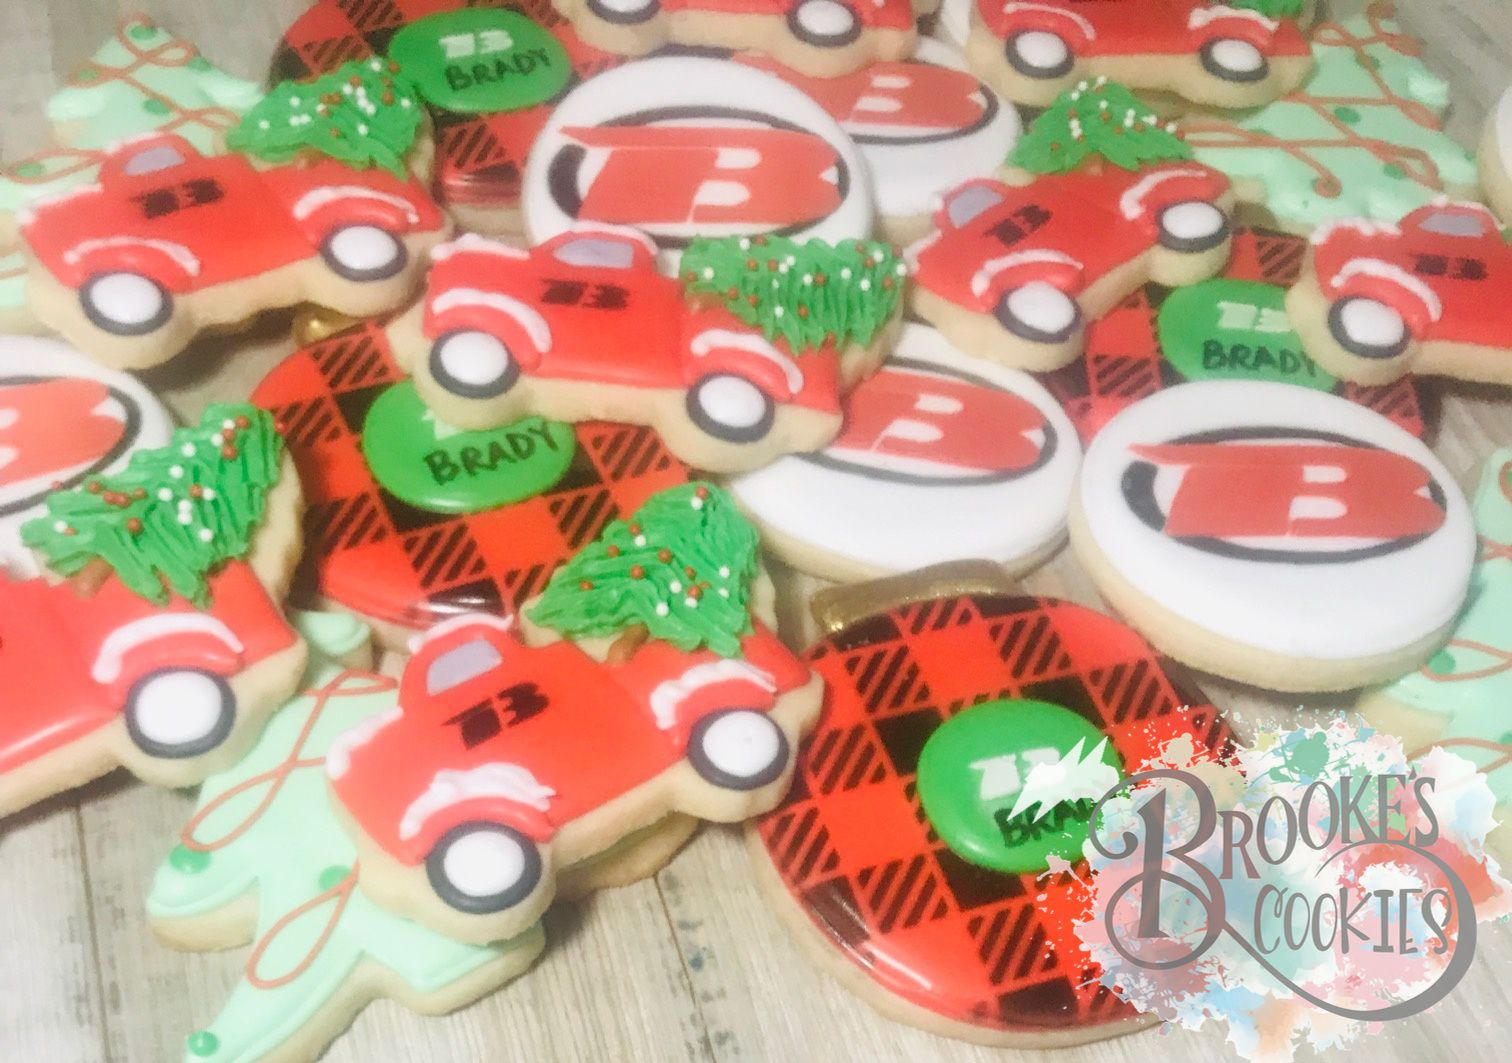 Brady Trucking and Welding Cookies Cookie business